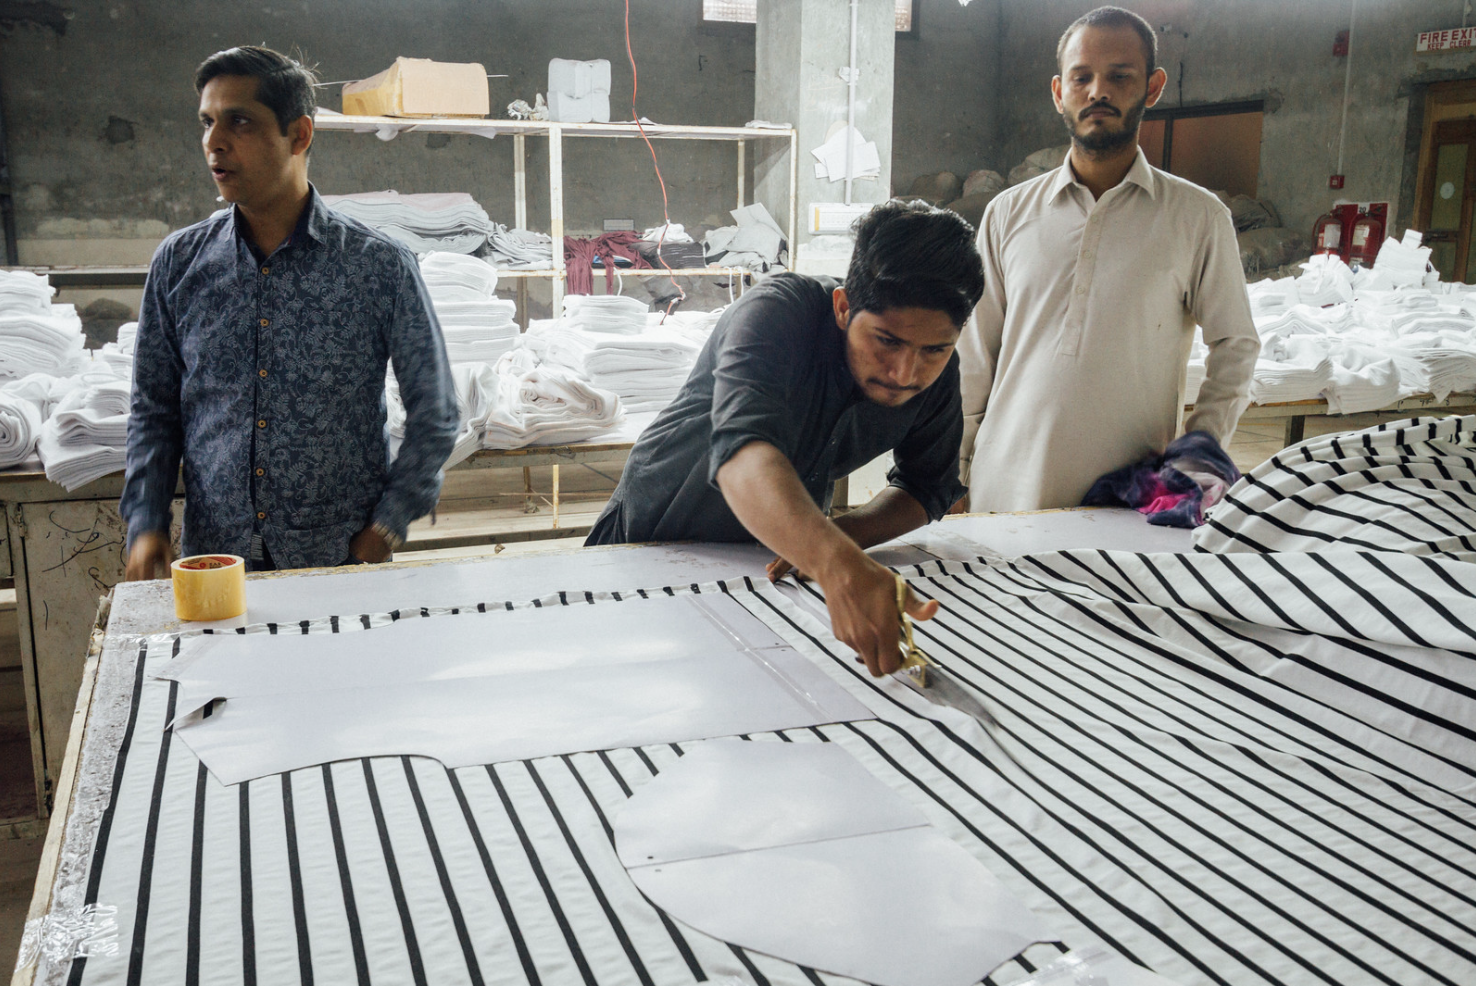 Garment workers cut cloth to pattern sizes at a clothing factory in Faisalabad, Punjab, Pakistan, March 3, 2020 (Photo by Adam Cohn) Creative Commons license via Flickr